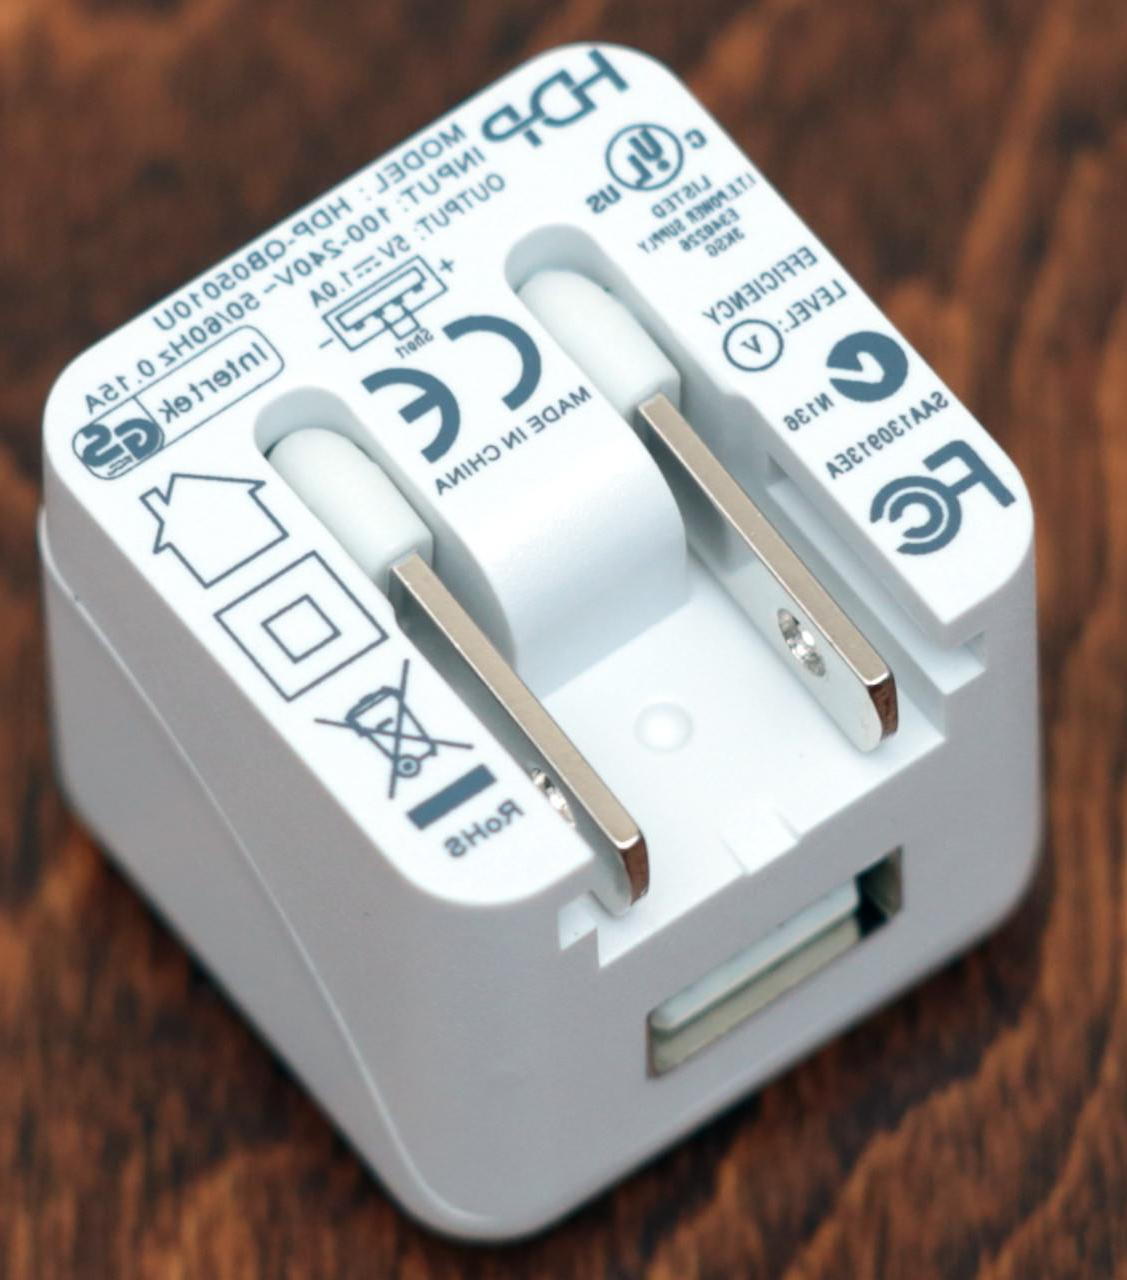 USB Wall Charger - Foldable - White 5V Power Supply - FCC Co